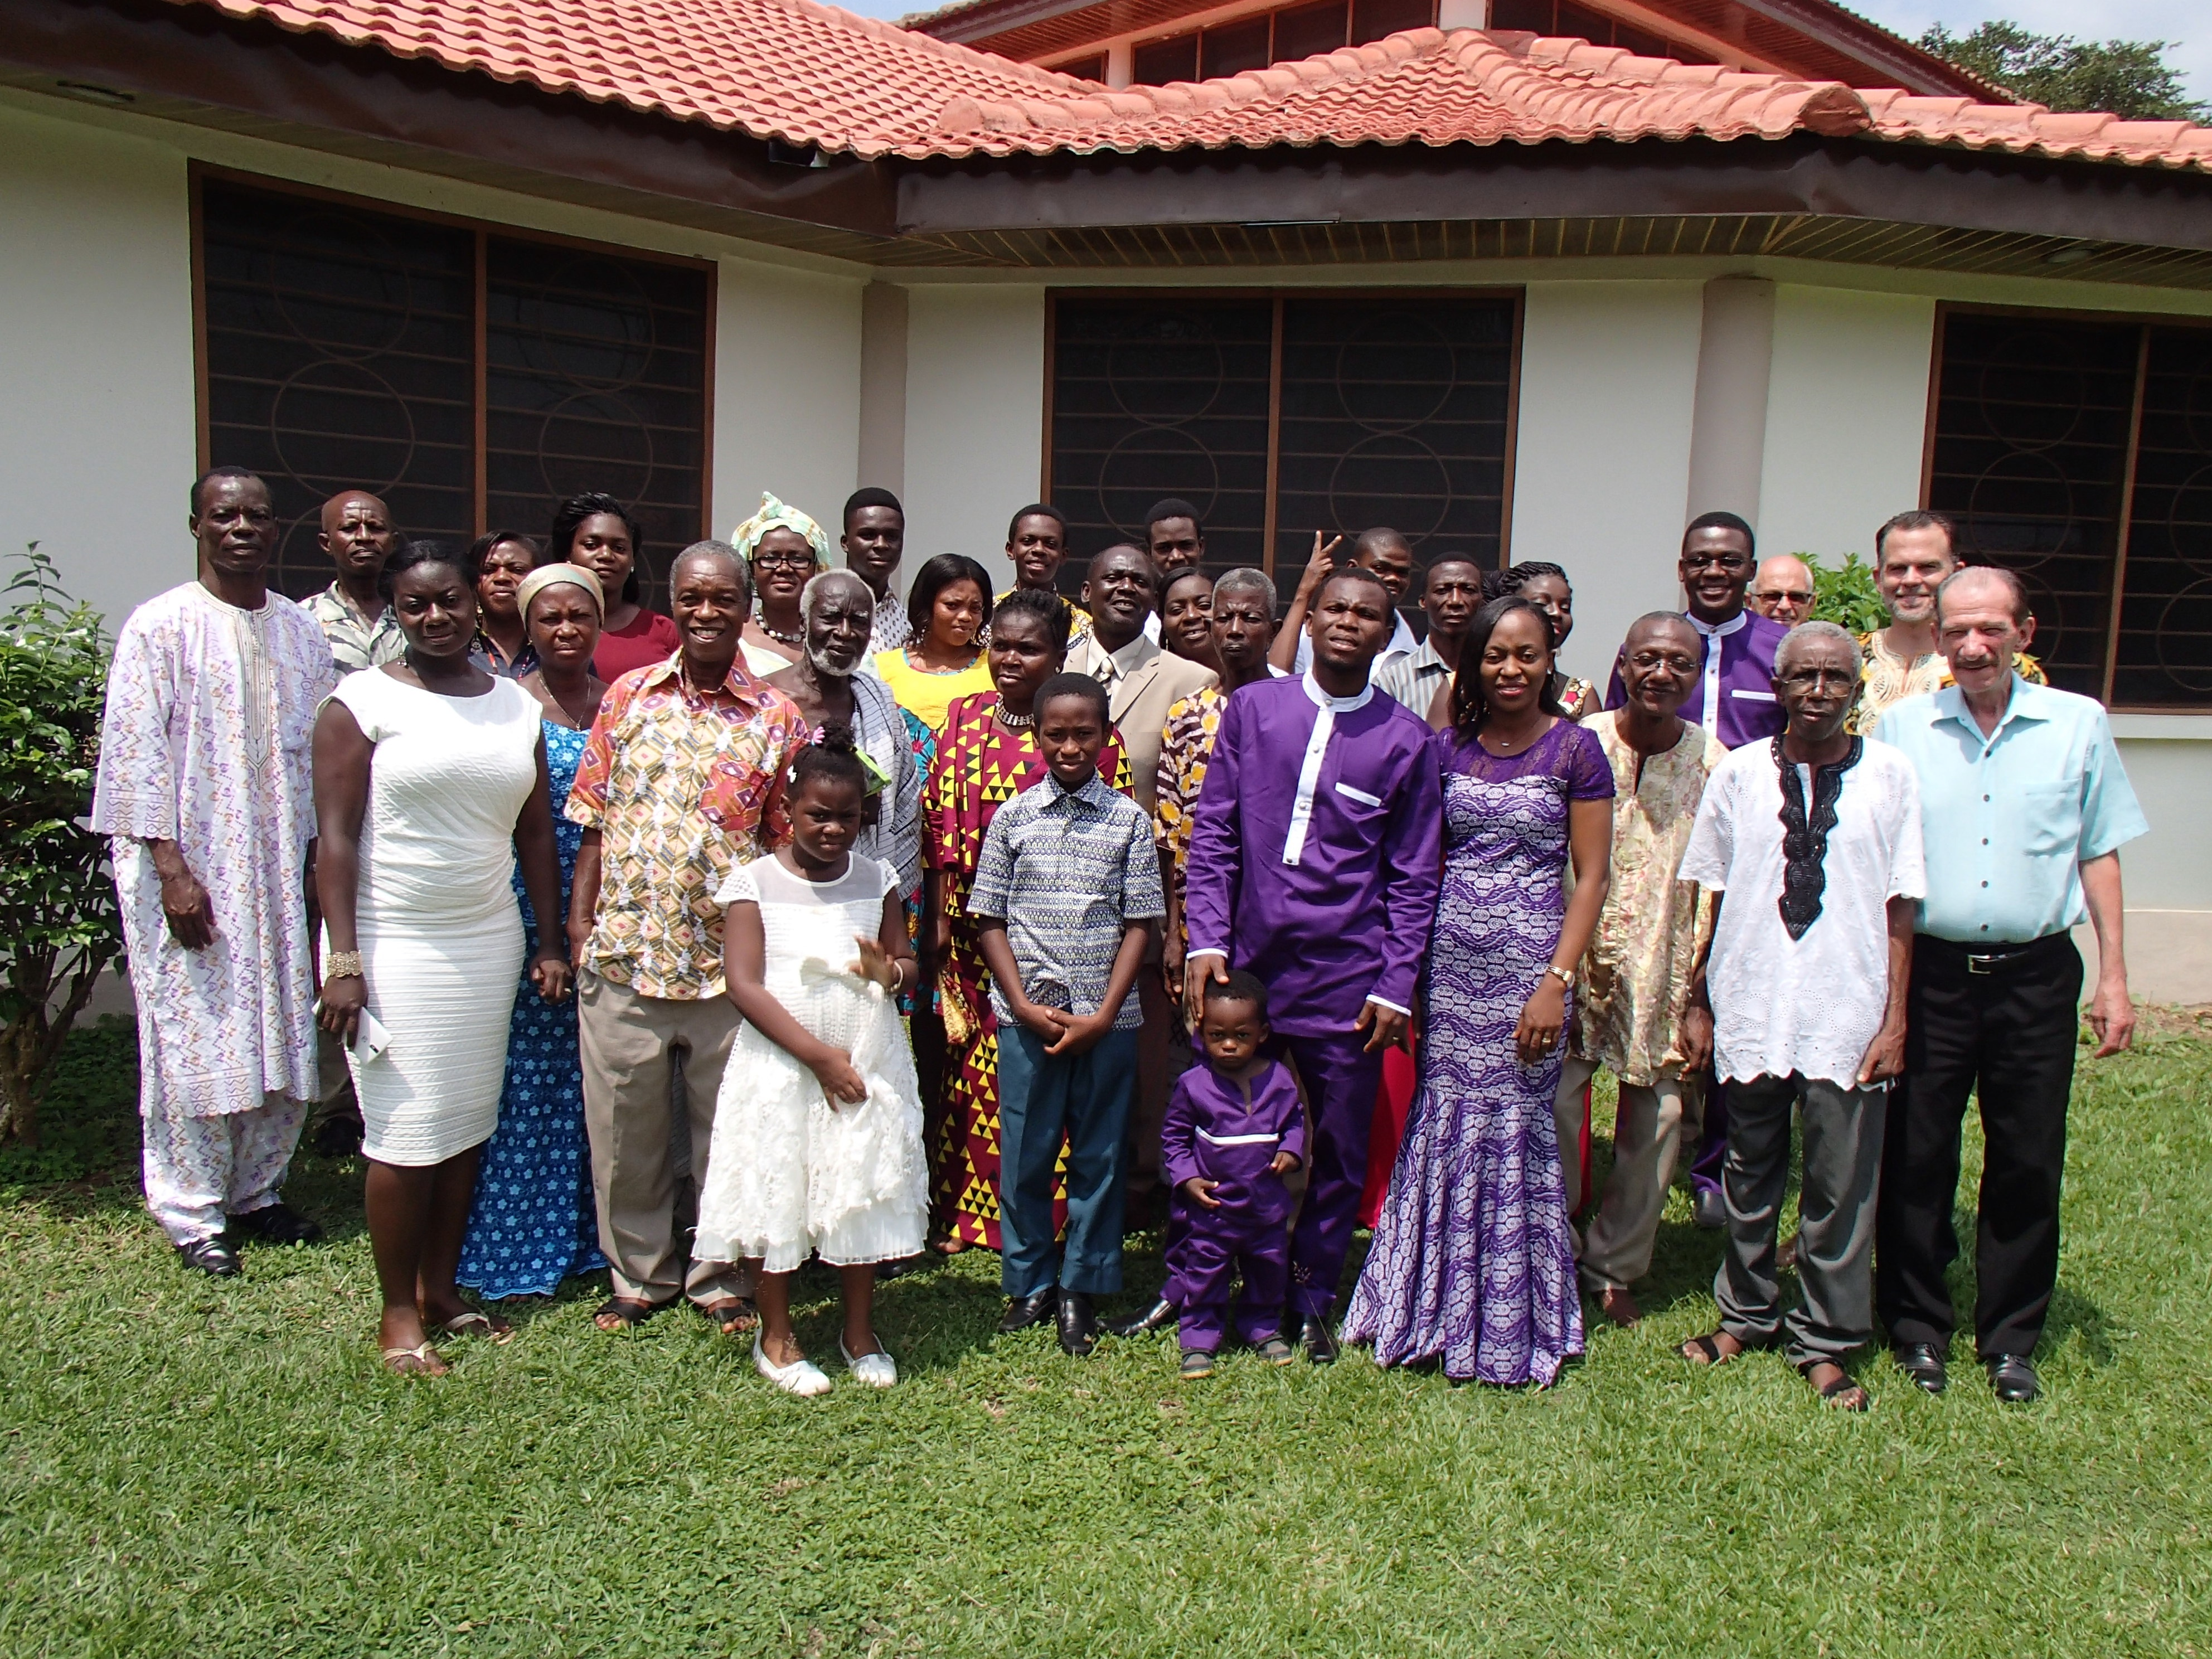 2016 Feast of Tabernacles Report Accra and Agora Ghana Africa & United News: November - December 2016 | United Church of God